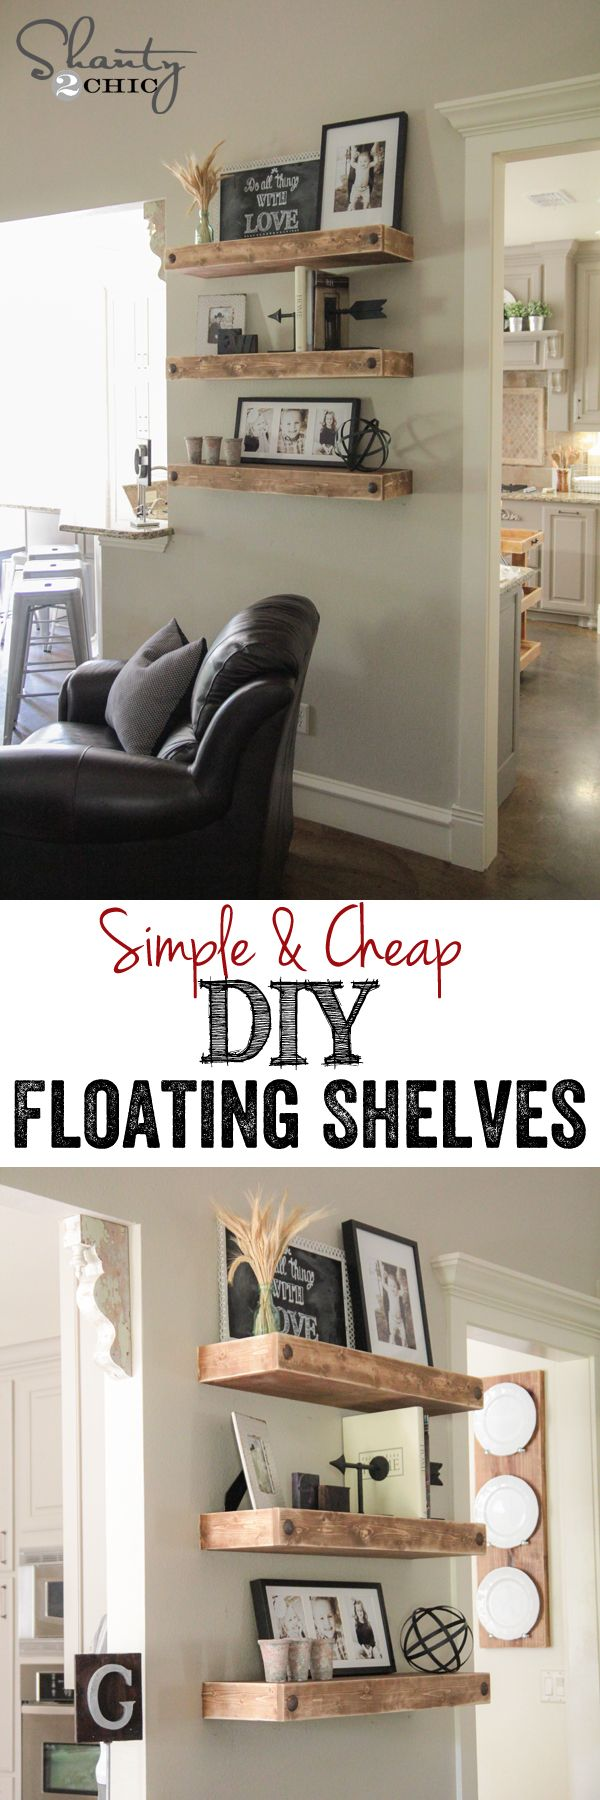 DIY Floating Shelves with Clavos